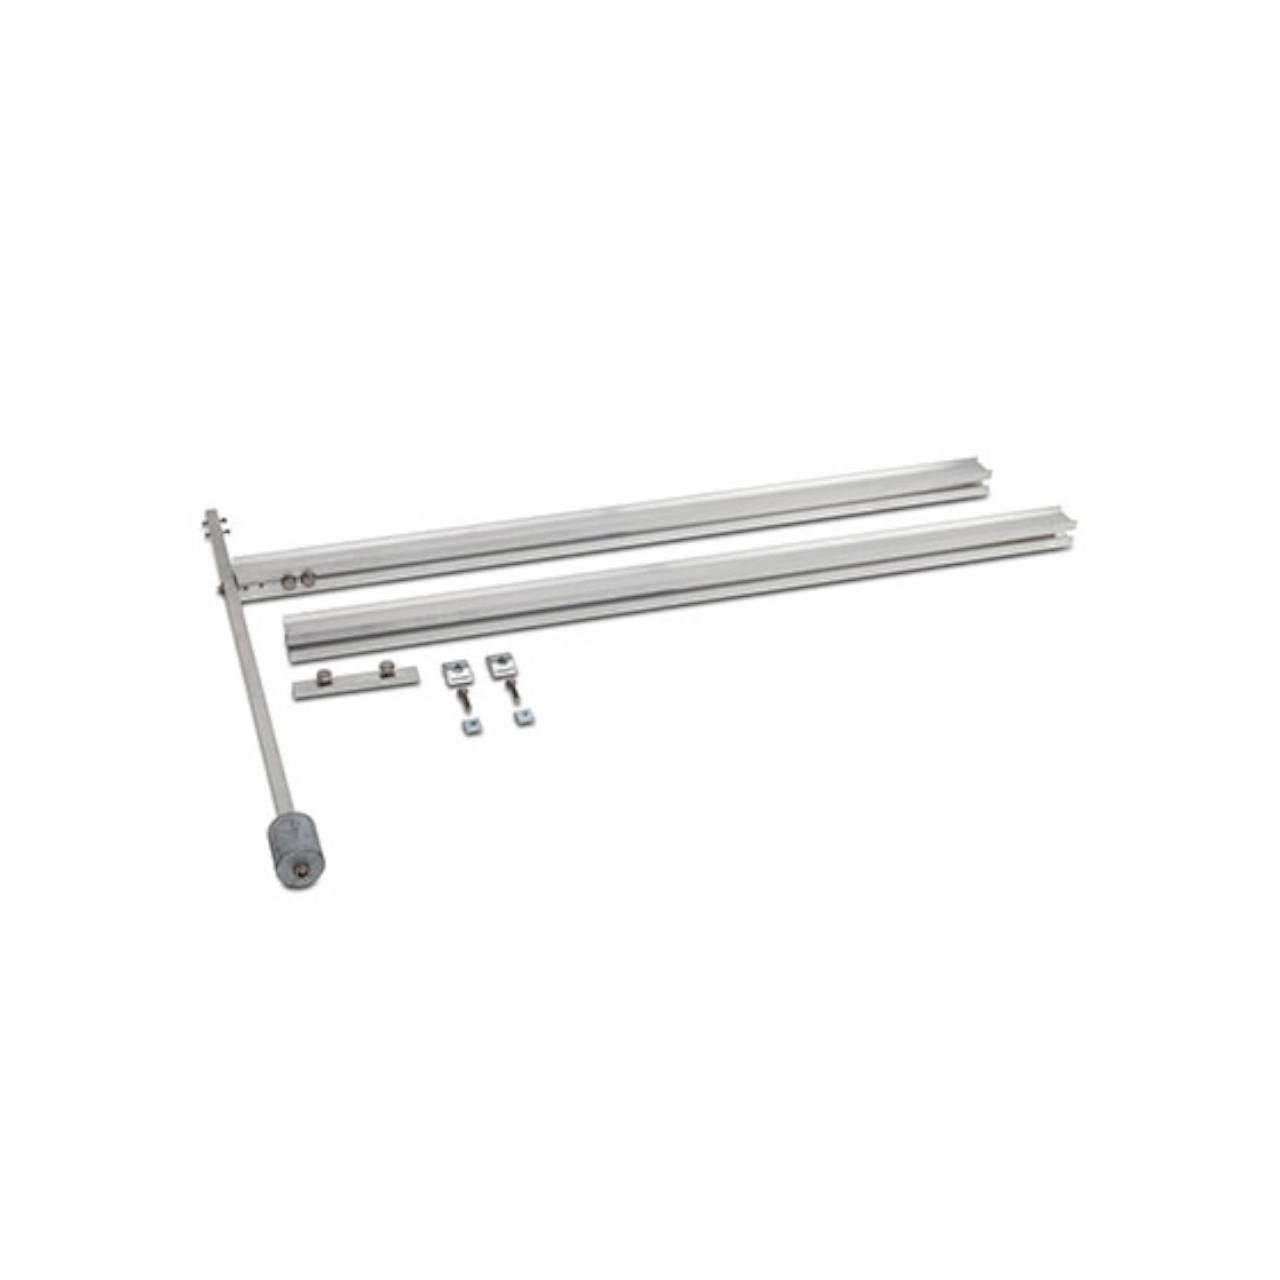 Deger - Pendulum Wind Guard Kit